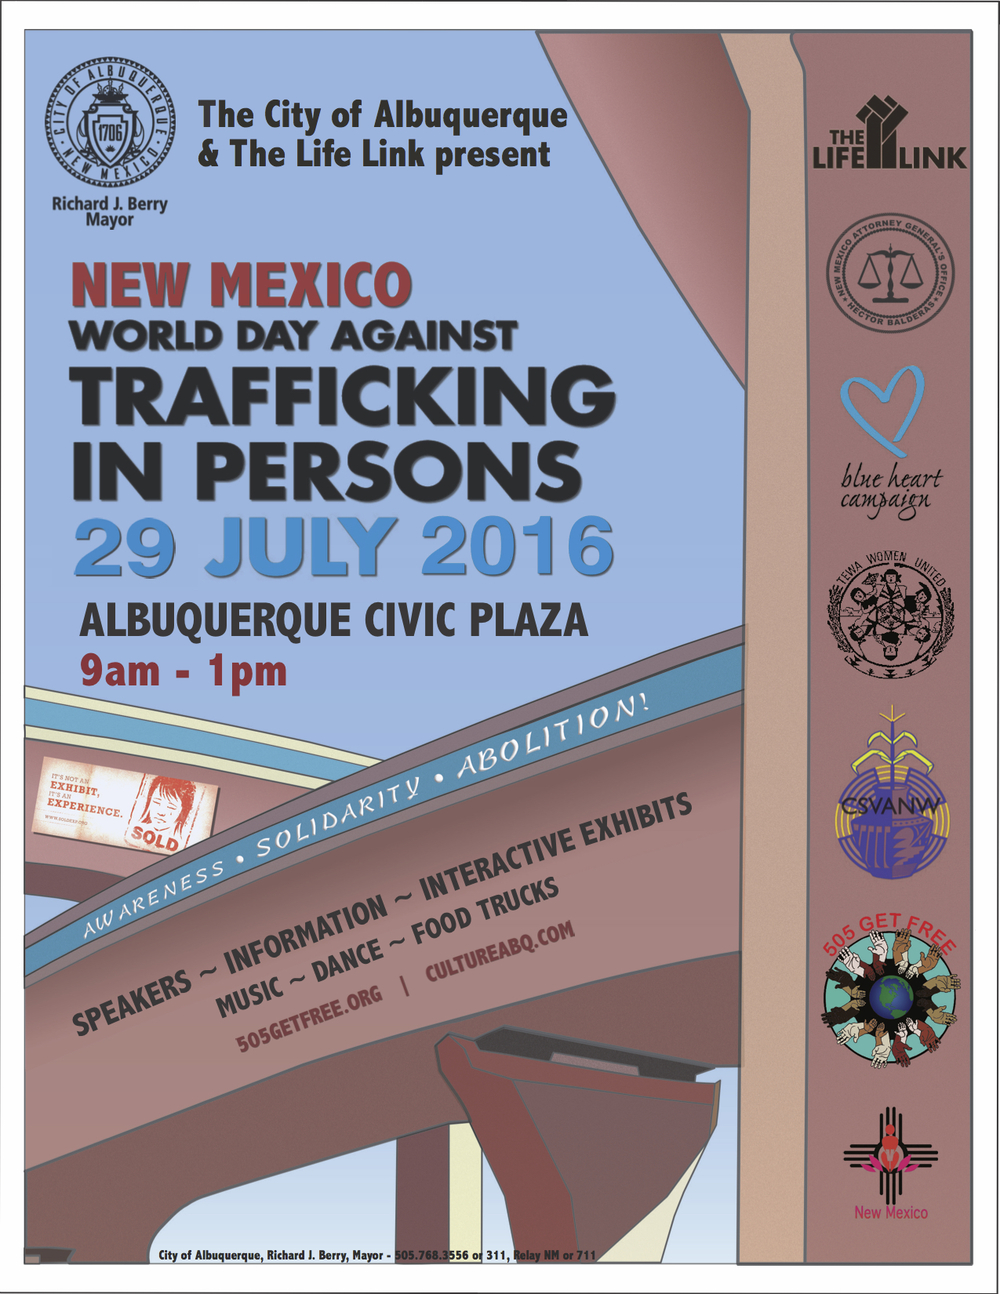 "The City of Albuquerque and The Life Link are proud to announce the New Mexico World Day Against Trafficking in Persons, to be held at Albuquerque Civic Plaza on July 29, 2016, from 9am to 1pm.  Joining forces with the New Mexico Office of the Attorney General, the Coalition to STOP Violence against Native Women, Tewa Women United, One Billion Rising, and others, we are devoting the day to raising awareness about Human Trafficking, educating the community about available resources, showing solidarity with victims, and campaigning to abolish modern day slavery in New Mexico and around the world. Speakers for the event include Albuquerque Mayor Richard J. Berry, New Mexico Attorney General Hector Balderas, and many others.  Entertainment includes live music and dance, food trucks, a performance by Graviel De La Plaga, and more. We are also proud to announce the participation of SOLD: The Human Trafficking Experience.  SOLD is a ""multi-sensory experience that will educate you on the shocking reality of human trafficking, both locally and globally.  Participants will be immersed into the lives of victims in nine different parts of the world.  SOLD challenges participants to respond to human trafficking with justice, mercy, and humility"". Please mark your calendars and join us on Albuquerque Civic Plaza on July 29th! Print copies of the flyer and share with friends and colleagues! End modern day slavery now!"